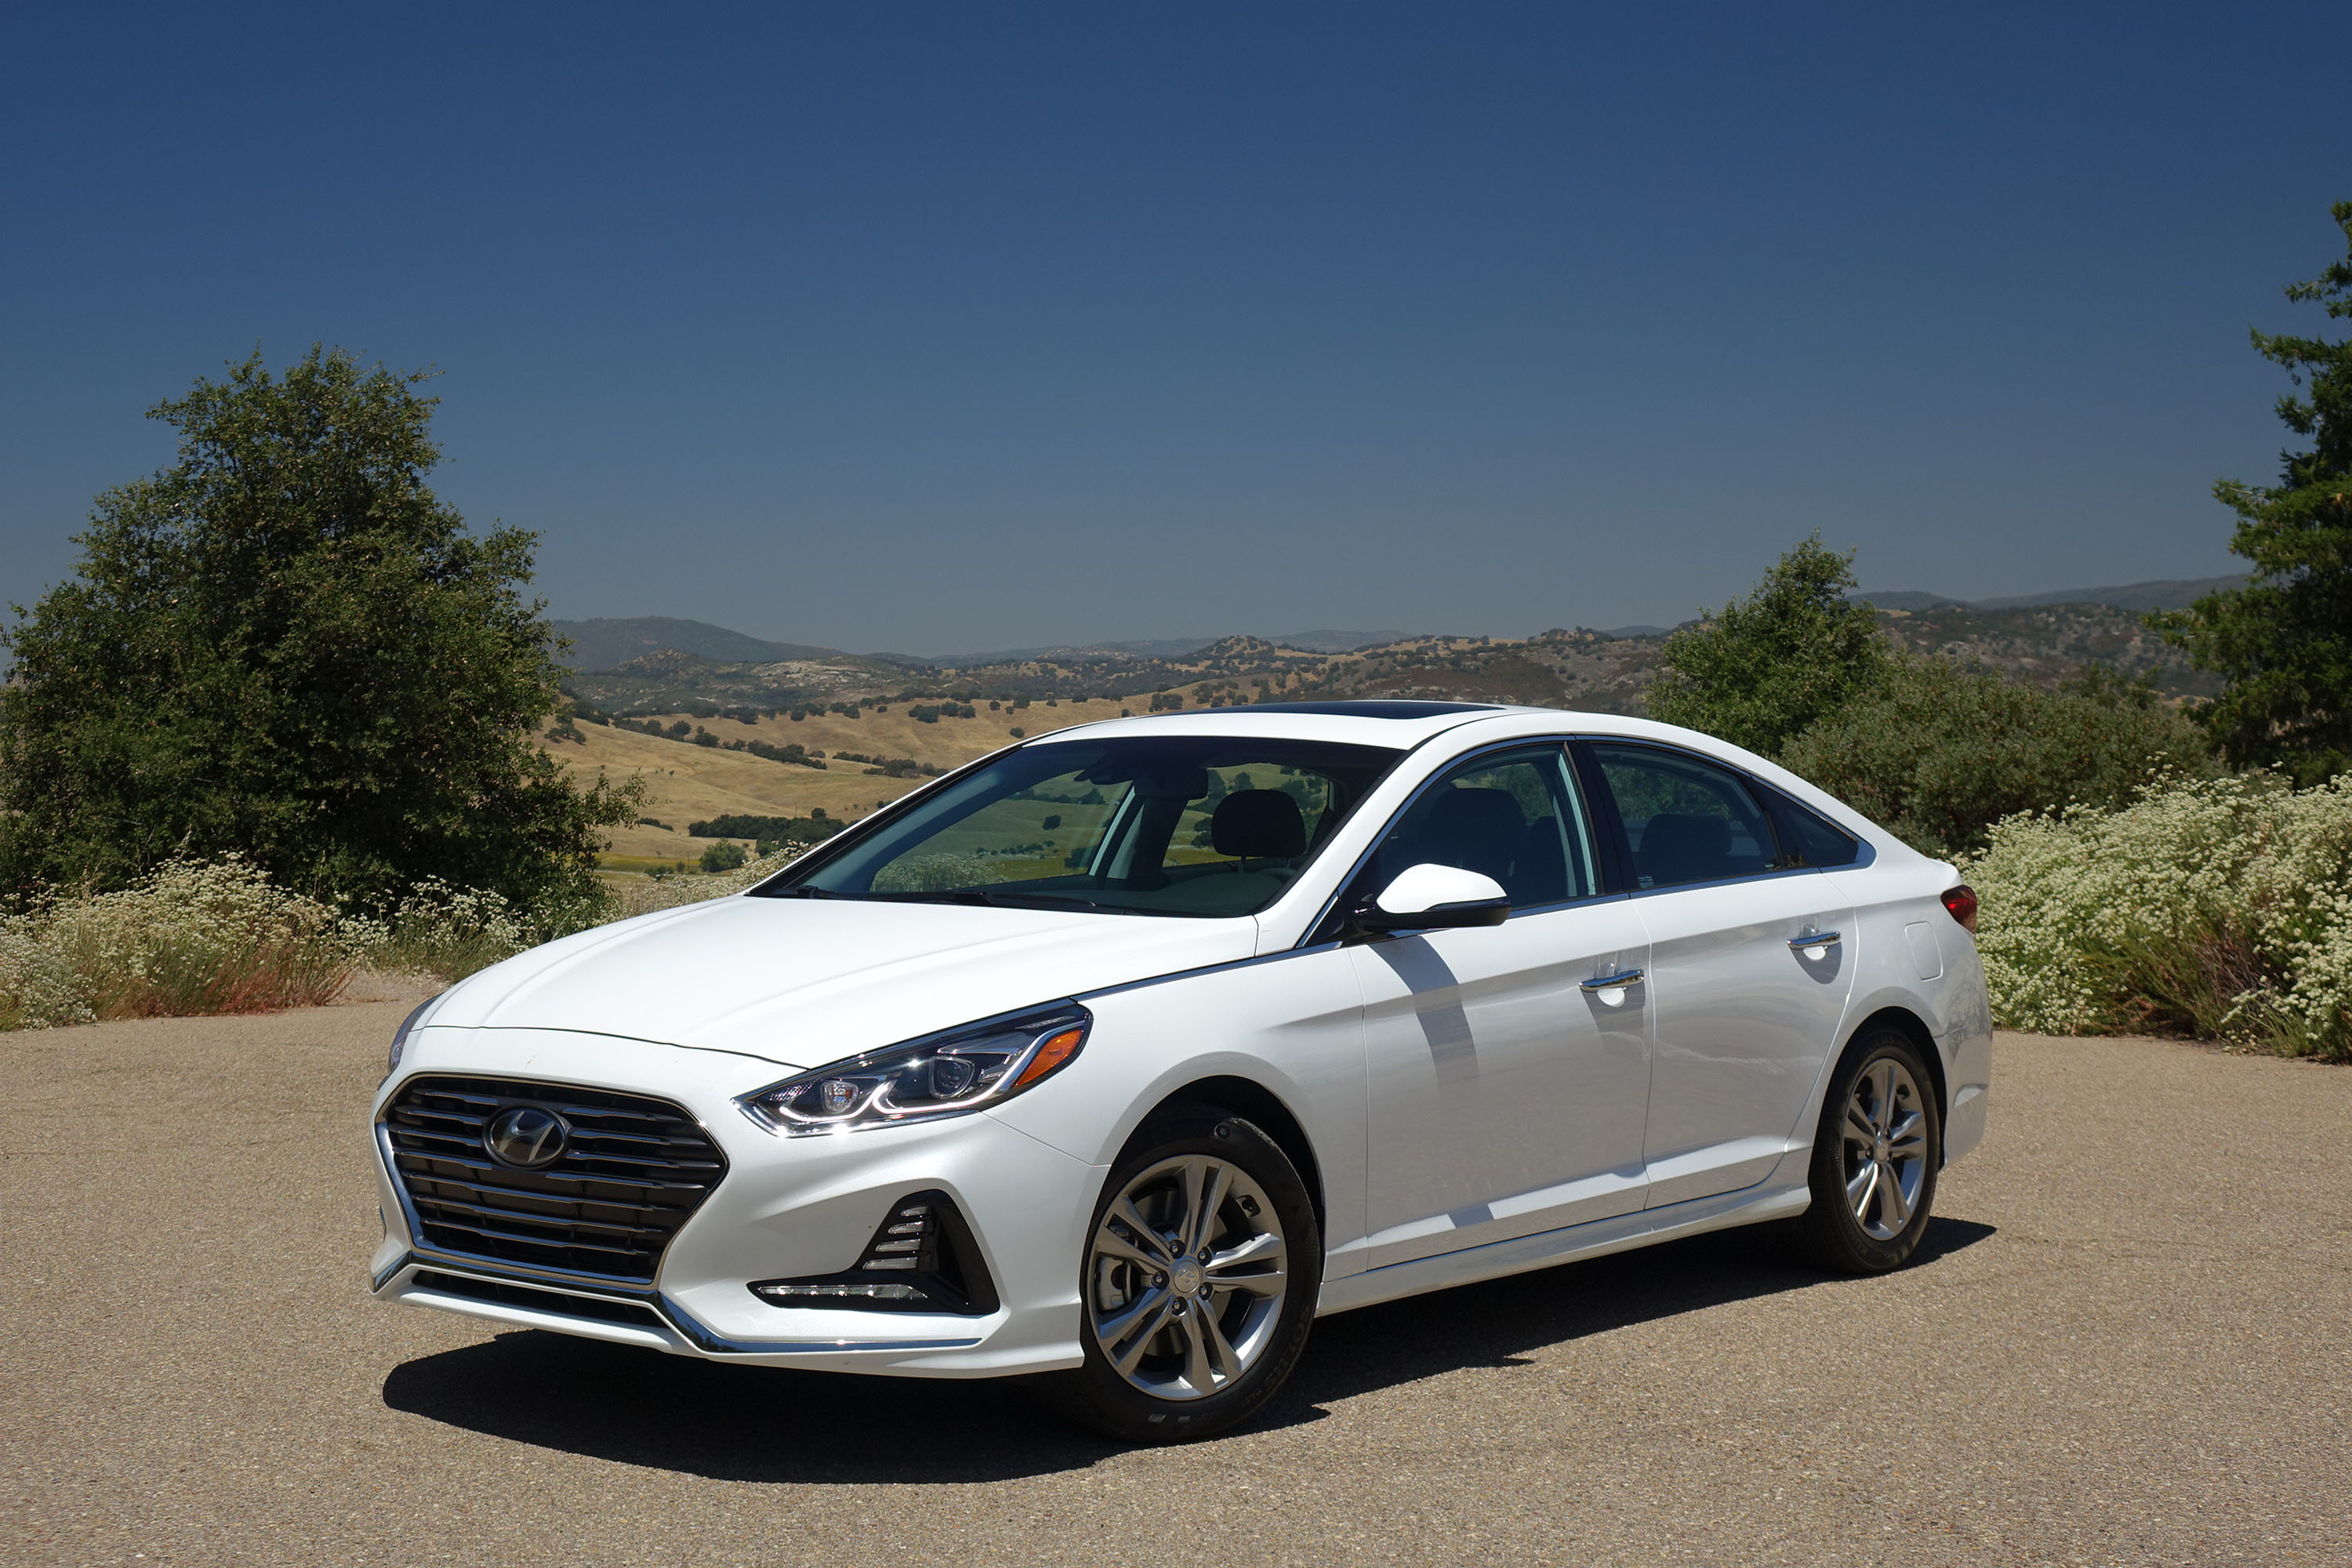 Colorado Springs Dodge >> 2018 Hyundai Sonata driven, 2018 Mercedes S-Class, 2018 Honda Accord Hybrid: What's New @ The ...